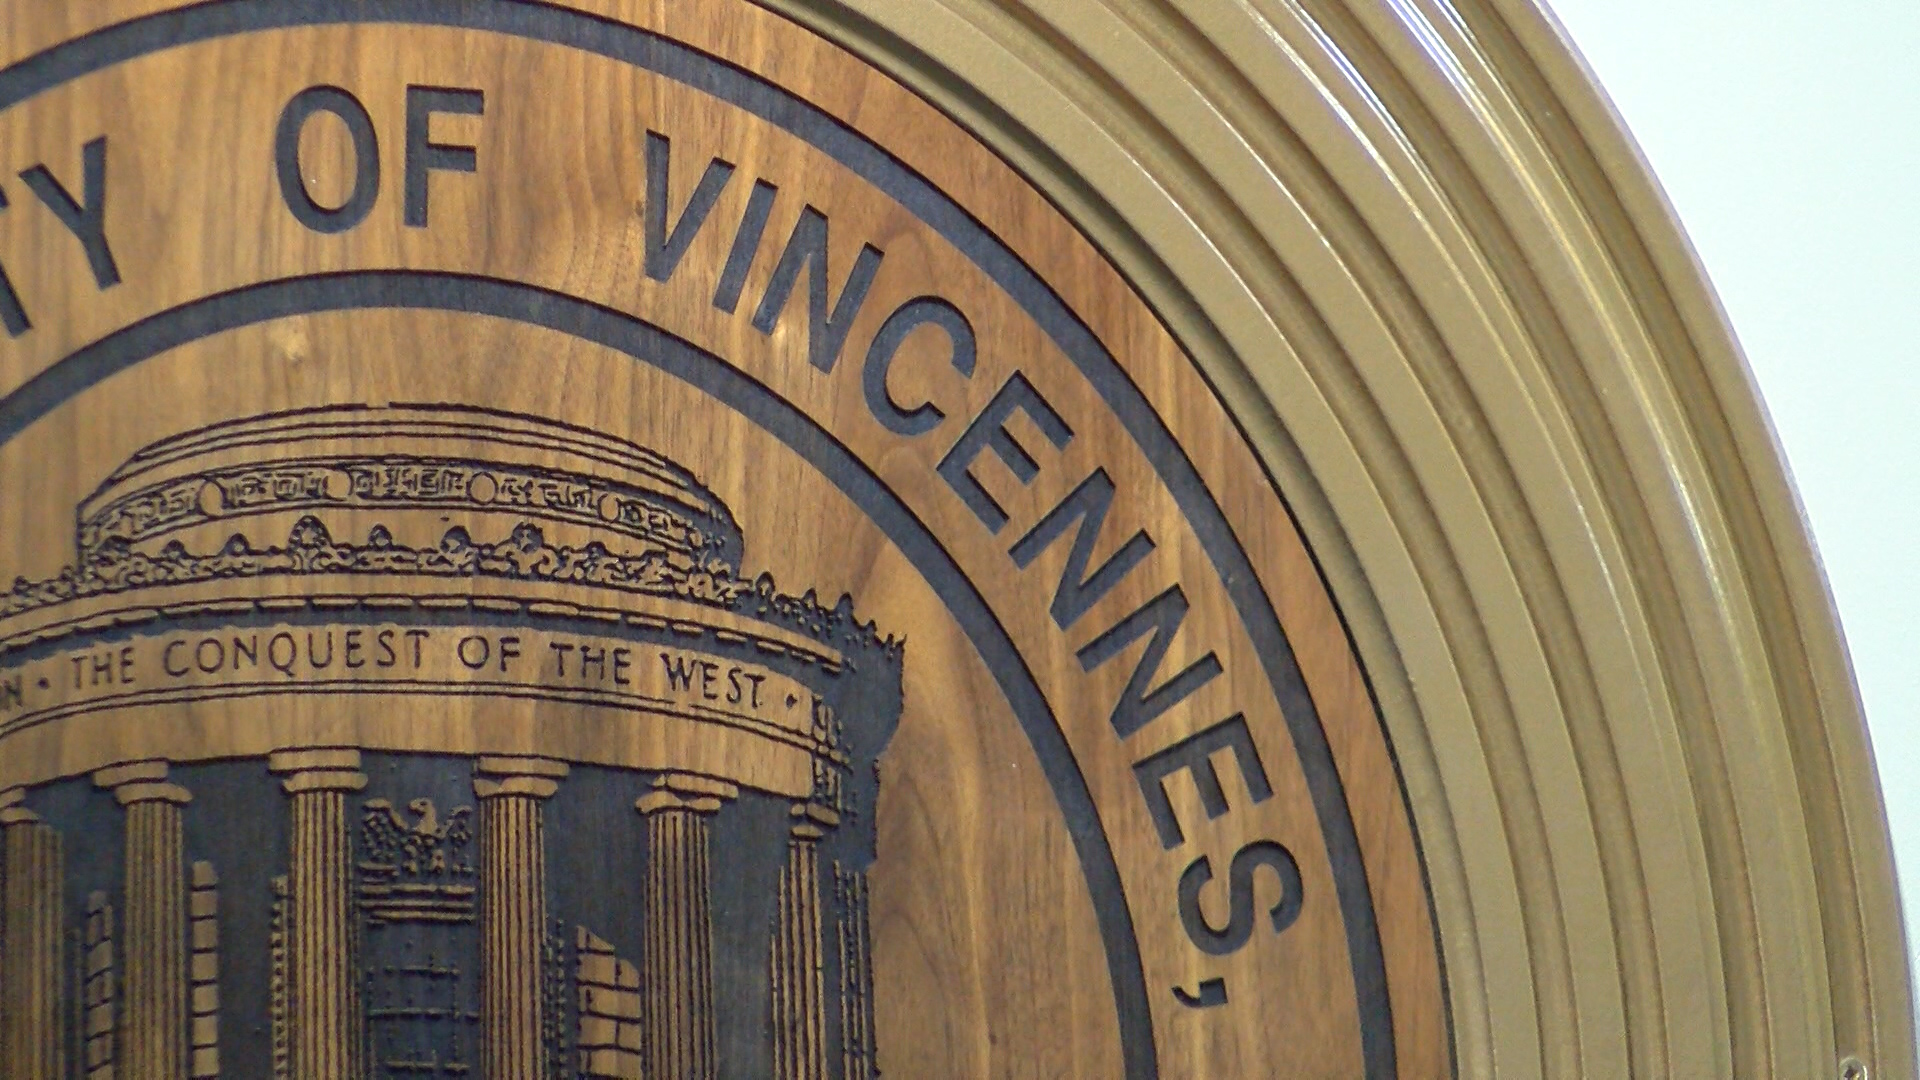 vincennes sign_1517613846185.jpg.jpg